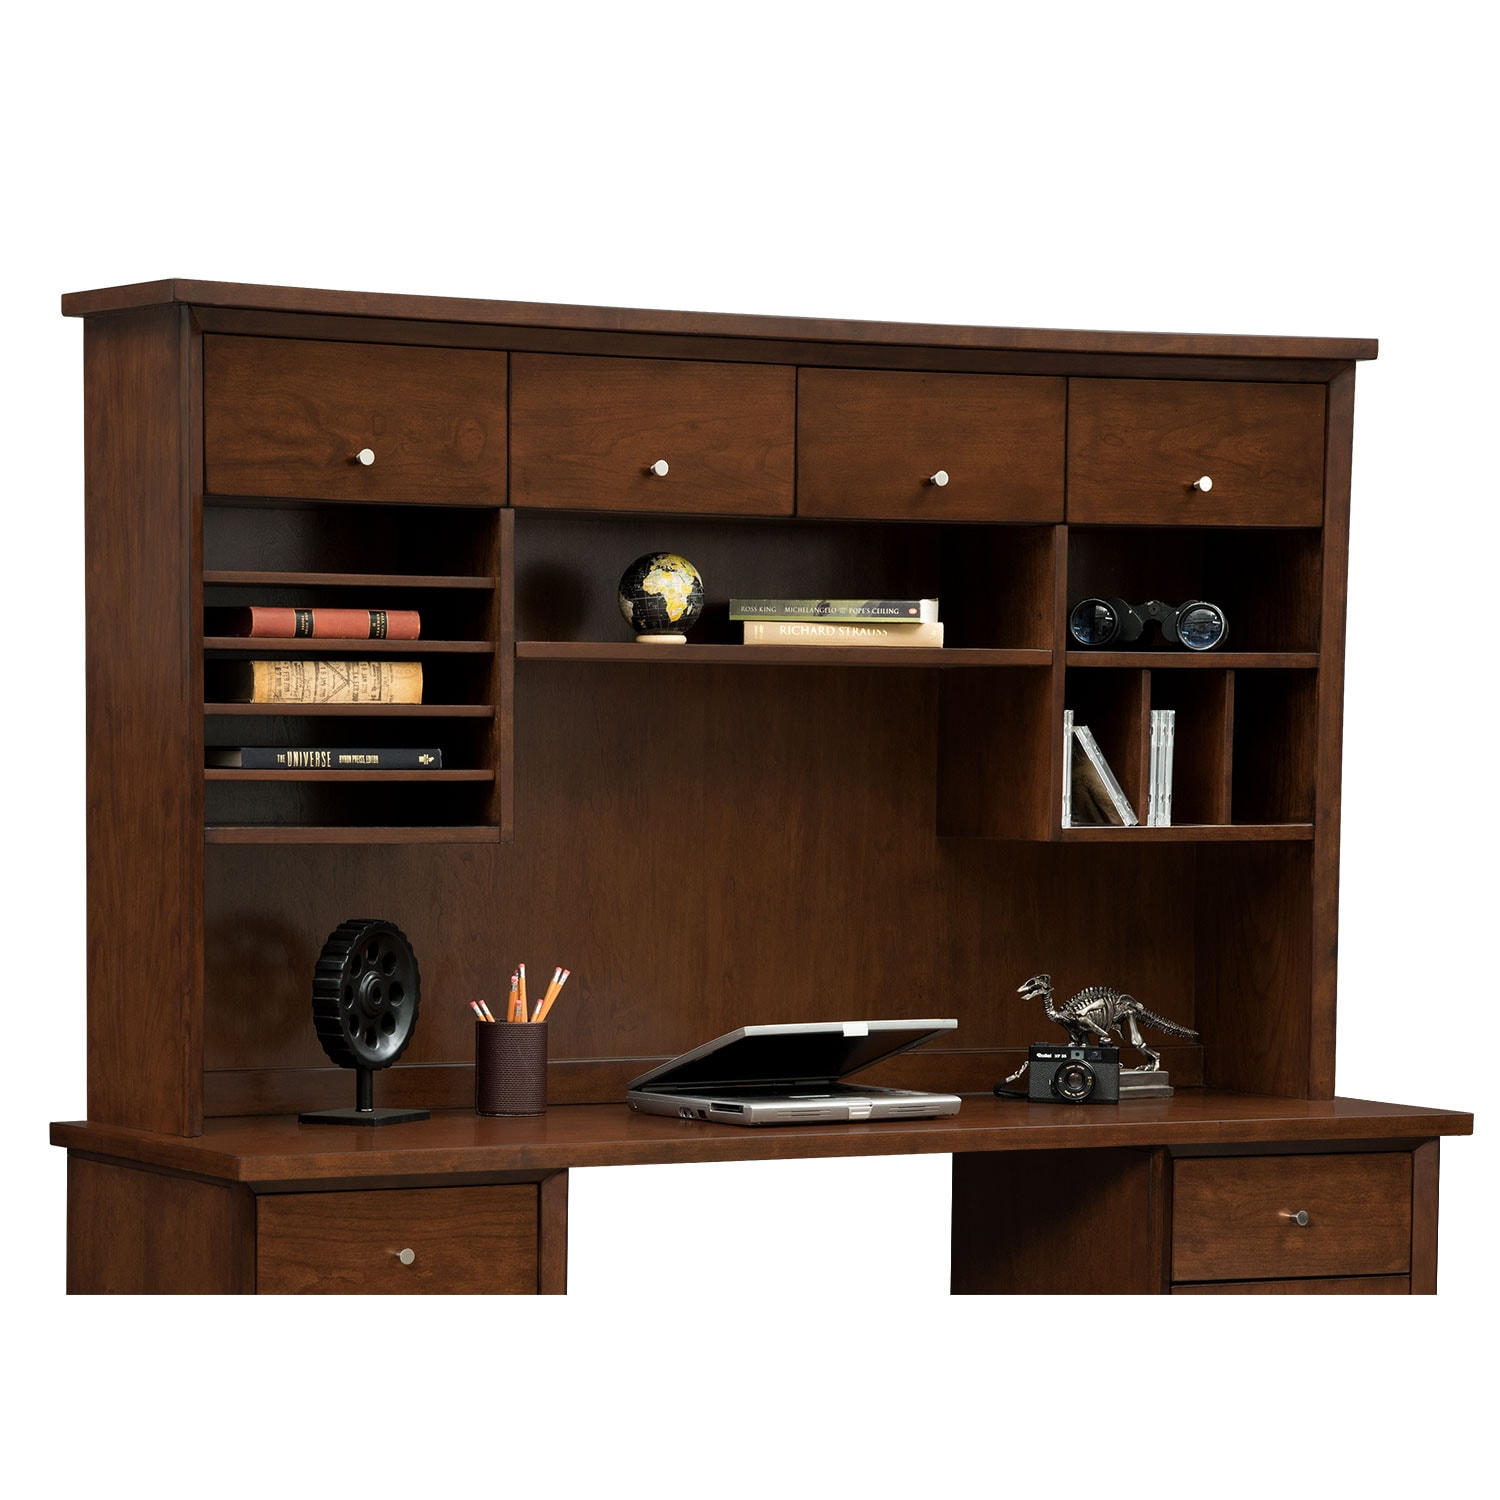 Oslo 4-Door Hutch - Cherry